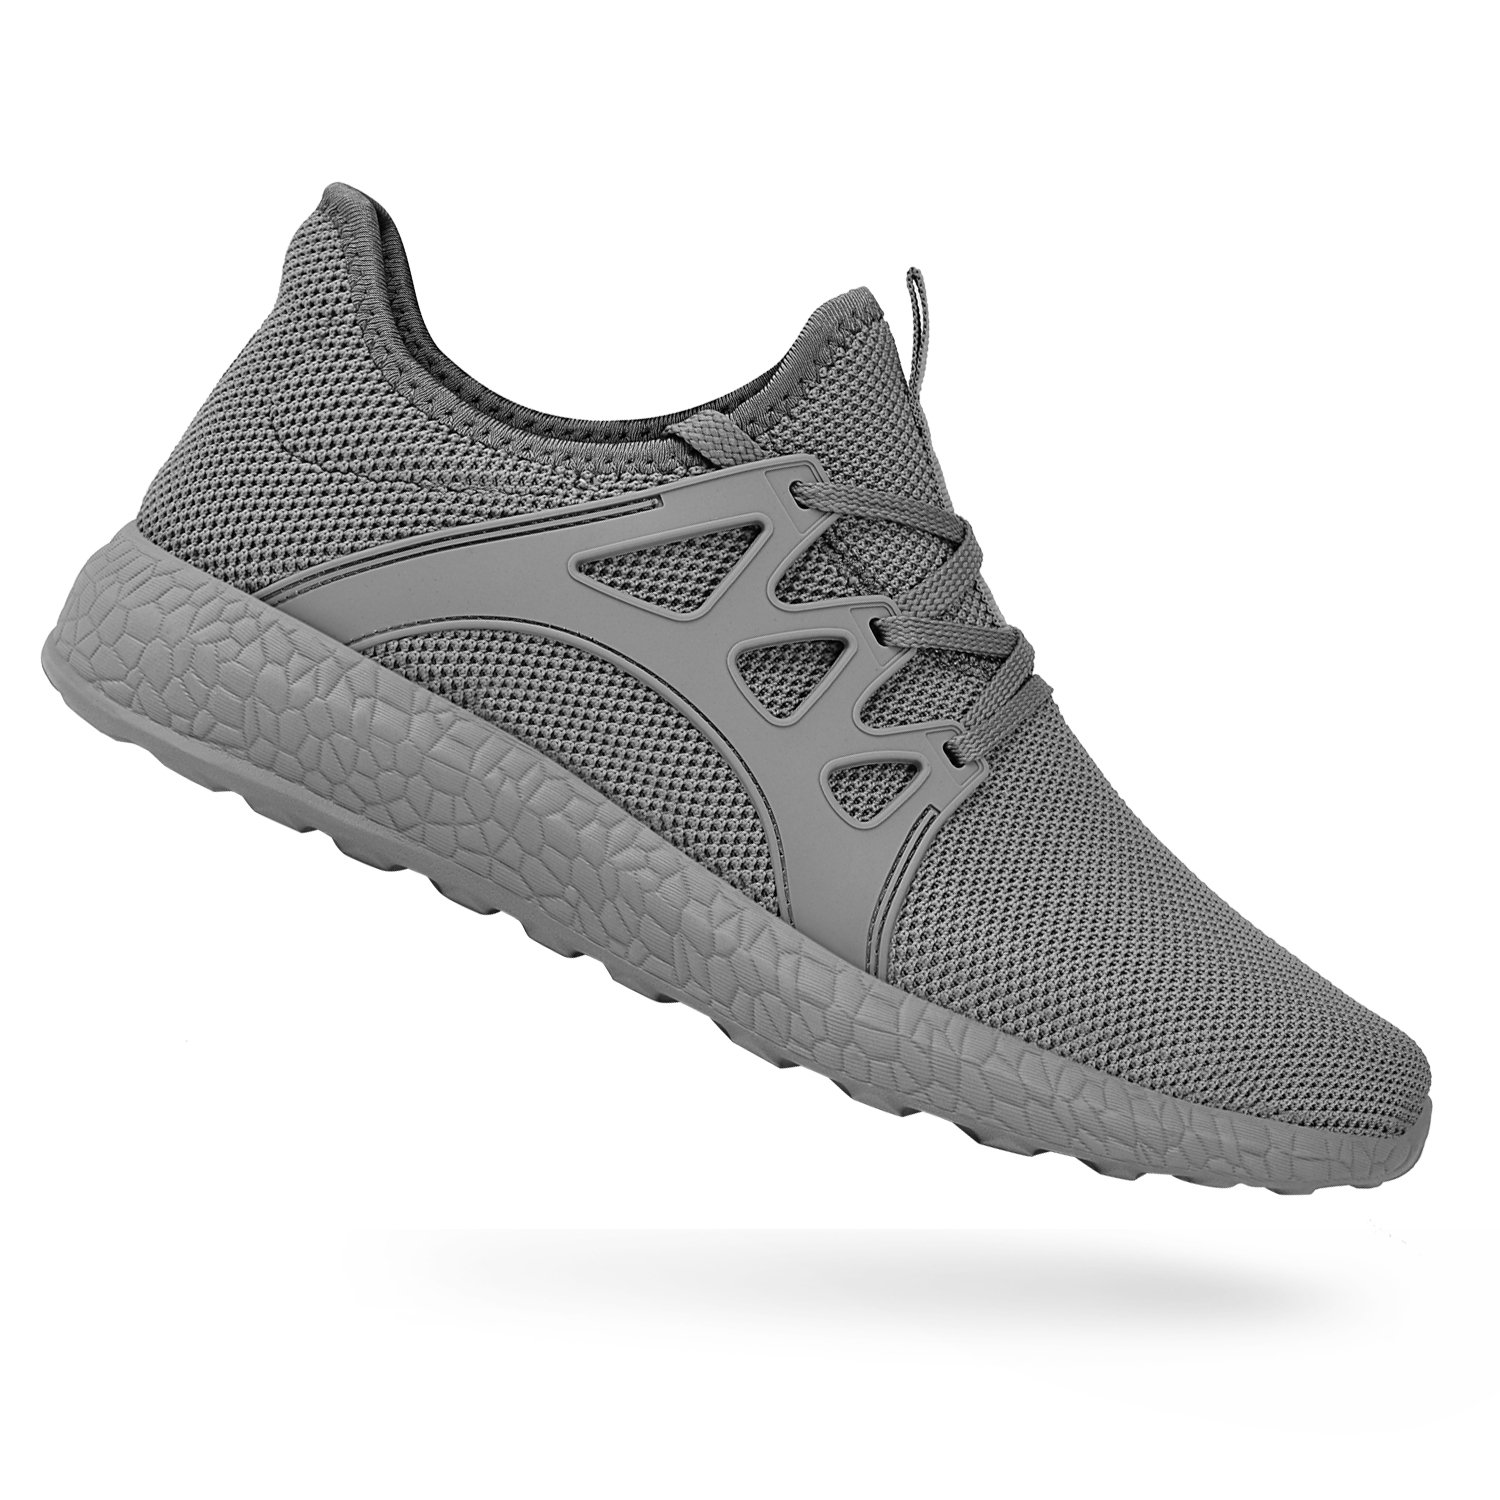 QANSI Men's Sneakers Mesh Ultra Breathable Lightweight Sports Running Shoes Gray Size 11 by QANSI